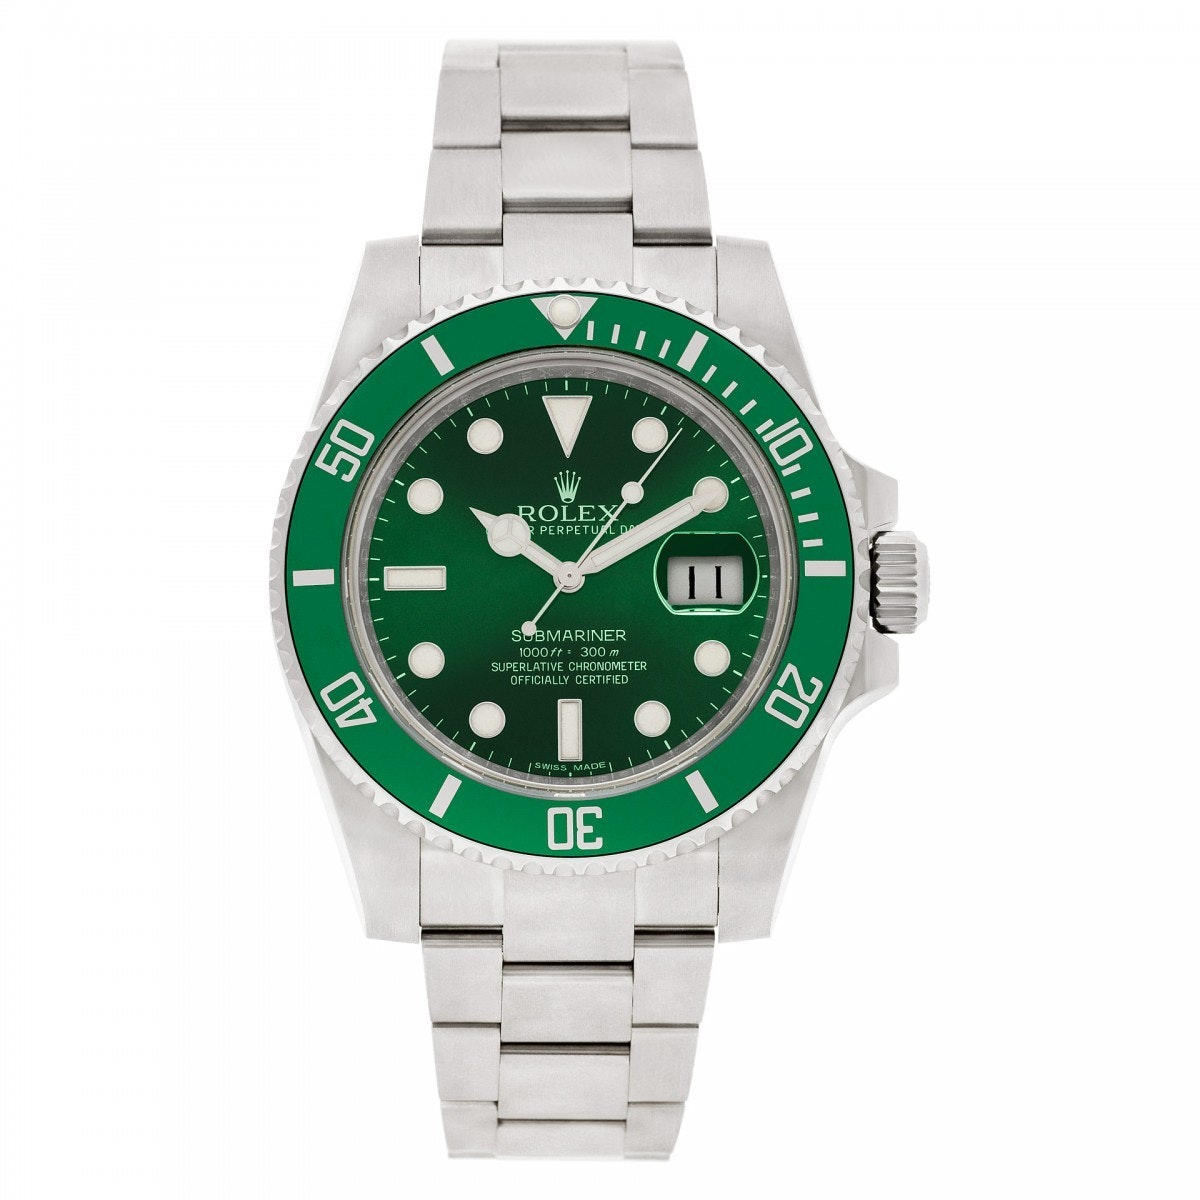 Price Auto Sales >> Rolex Submariner 116610LV - 40mm